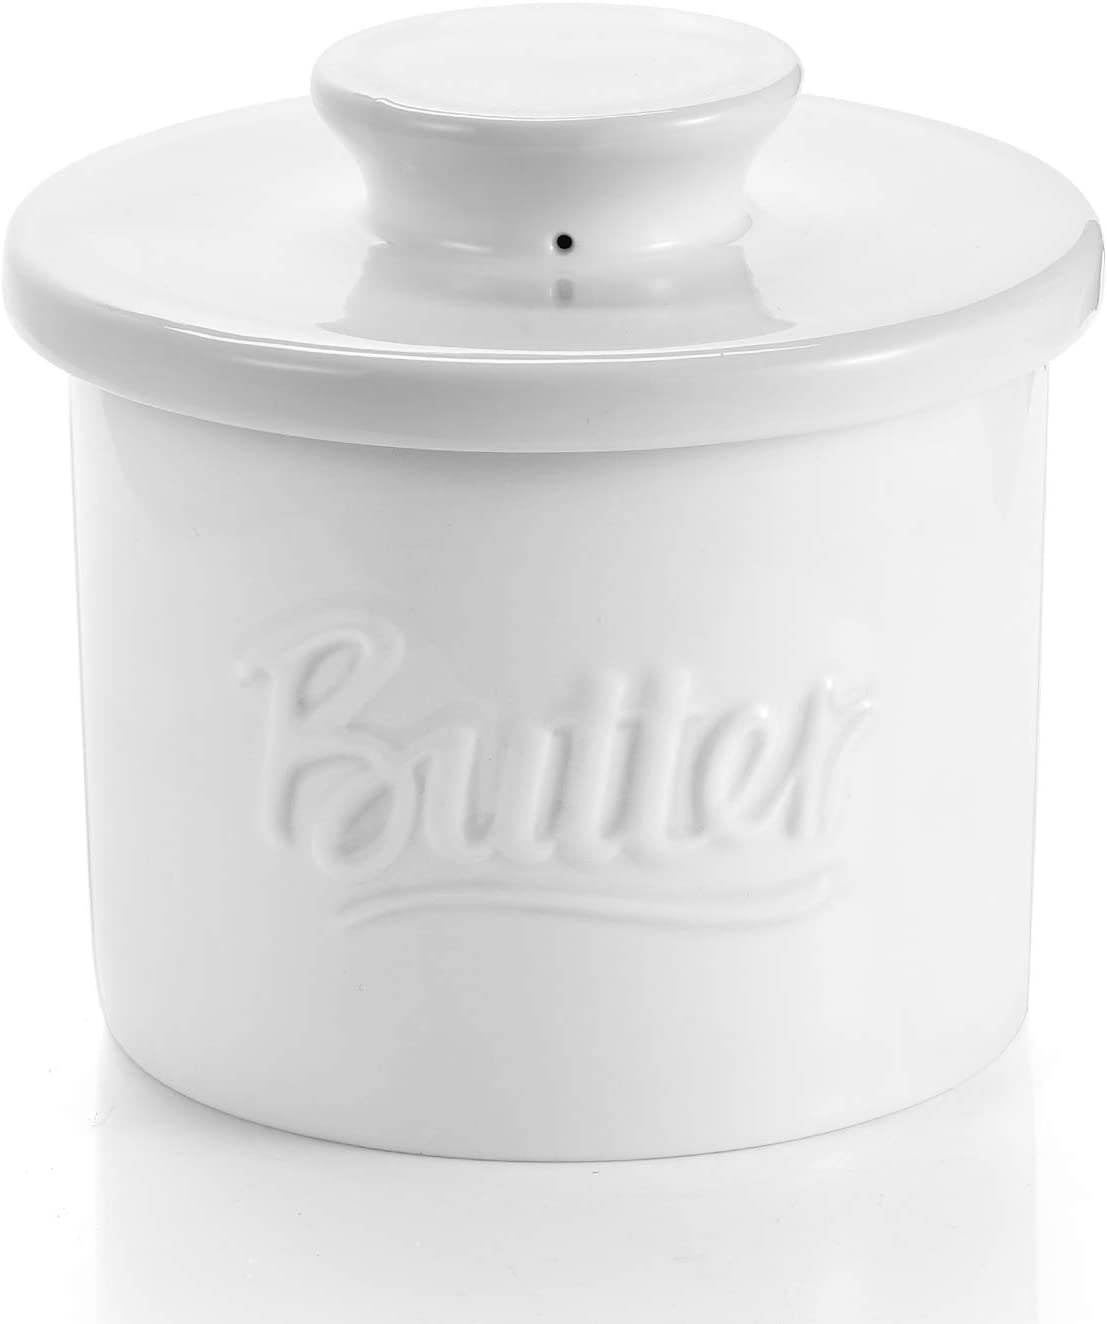 Sweese 322.101 Porcelain Butter Crock Keeper - French Butter Dish with Lid - Butter Relief, White